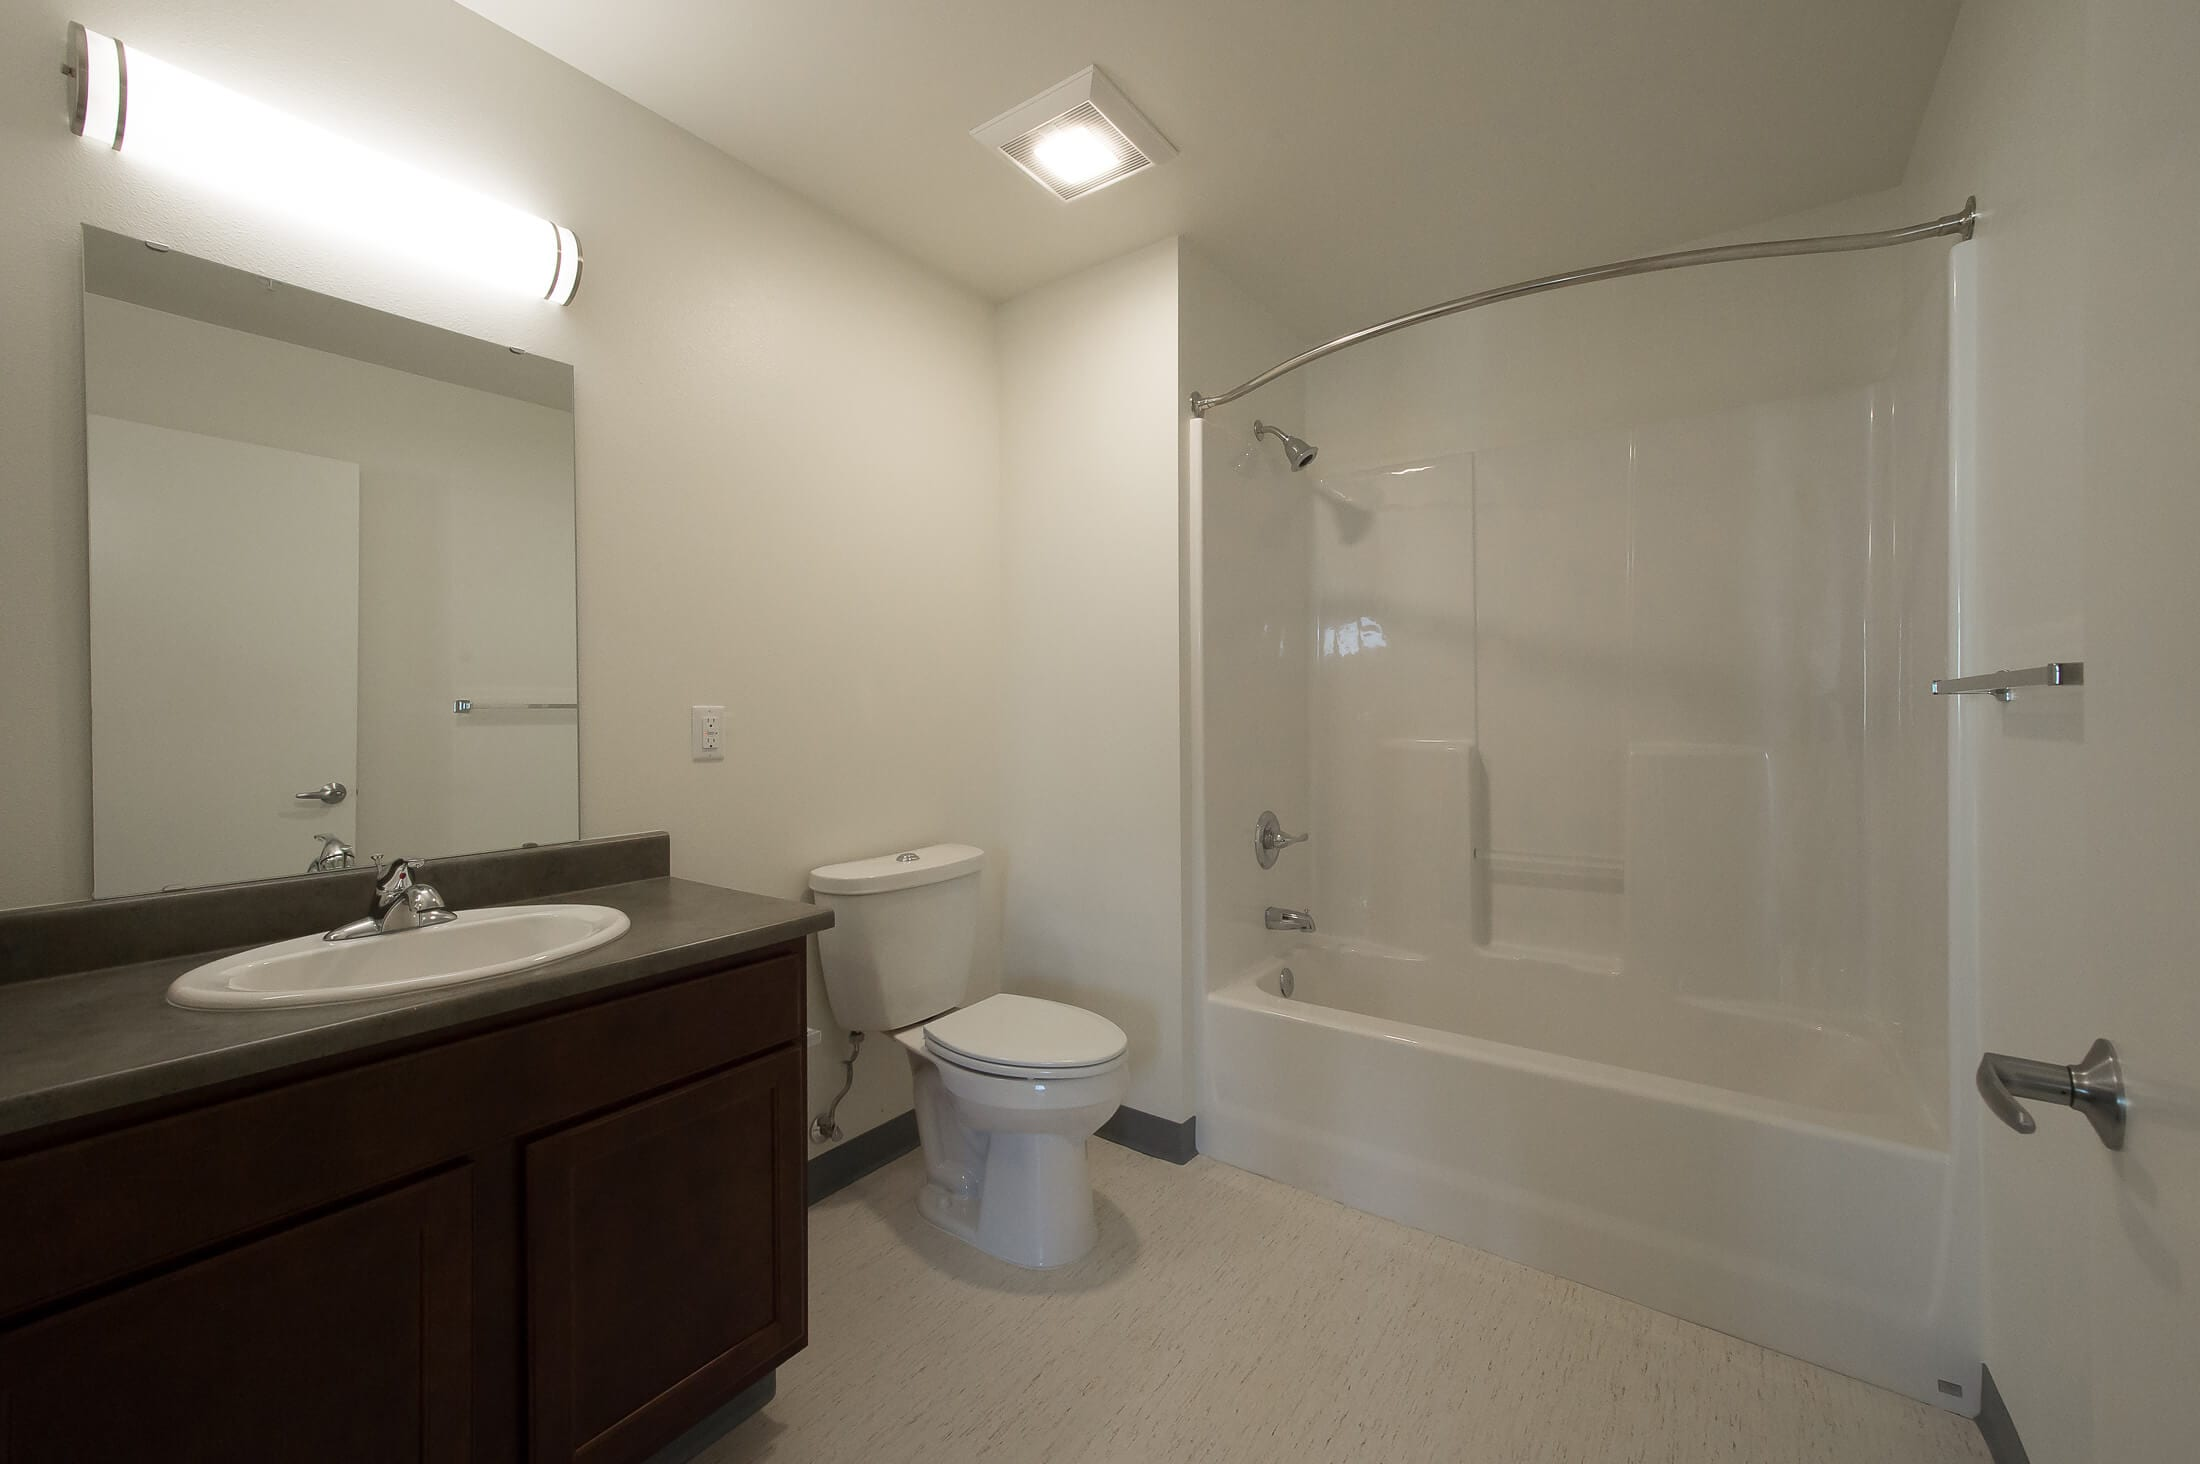 Expand Bakerview Bathroom Interior